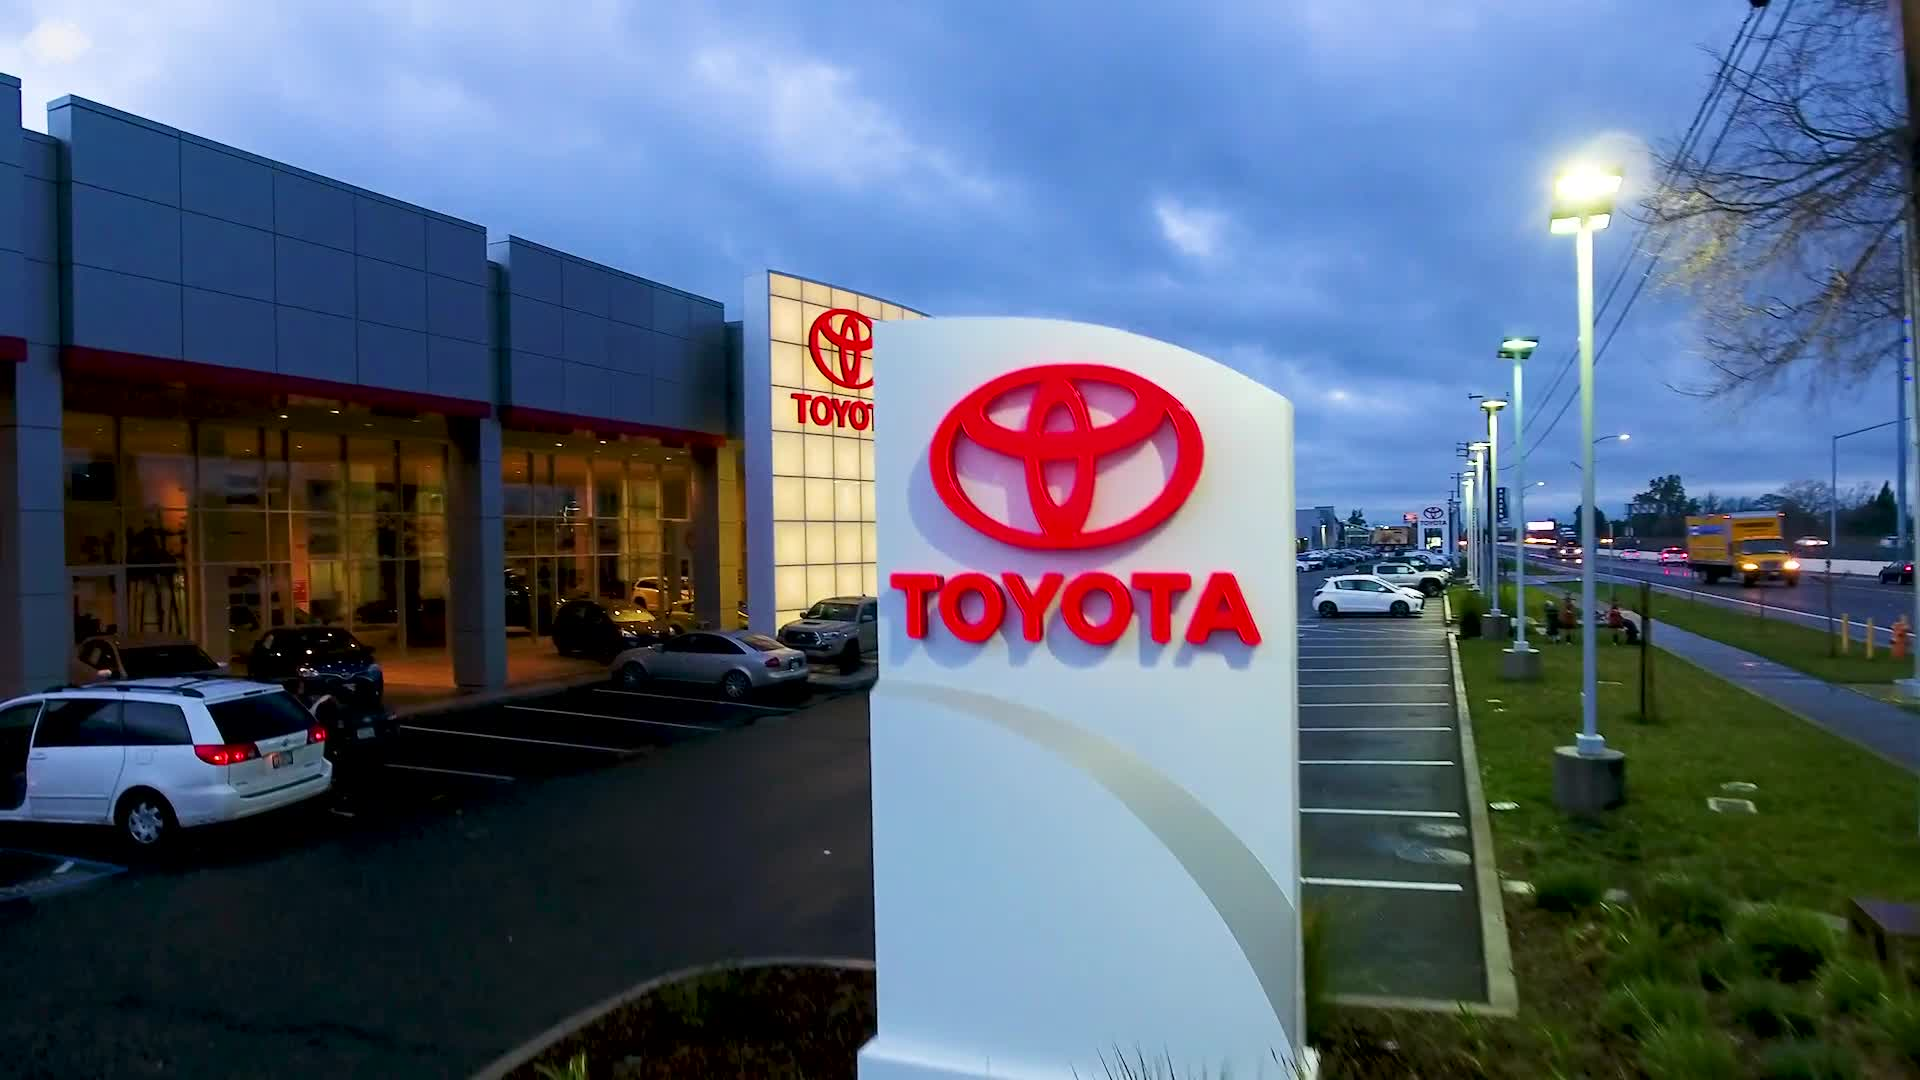 Toyota Dealer Sacramento CA New & Used Cars for Sale near